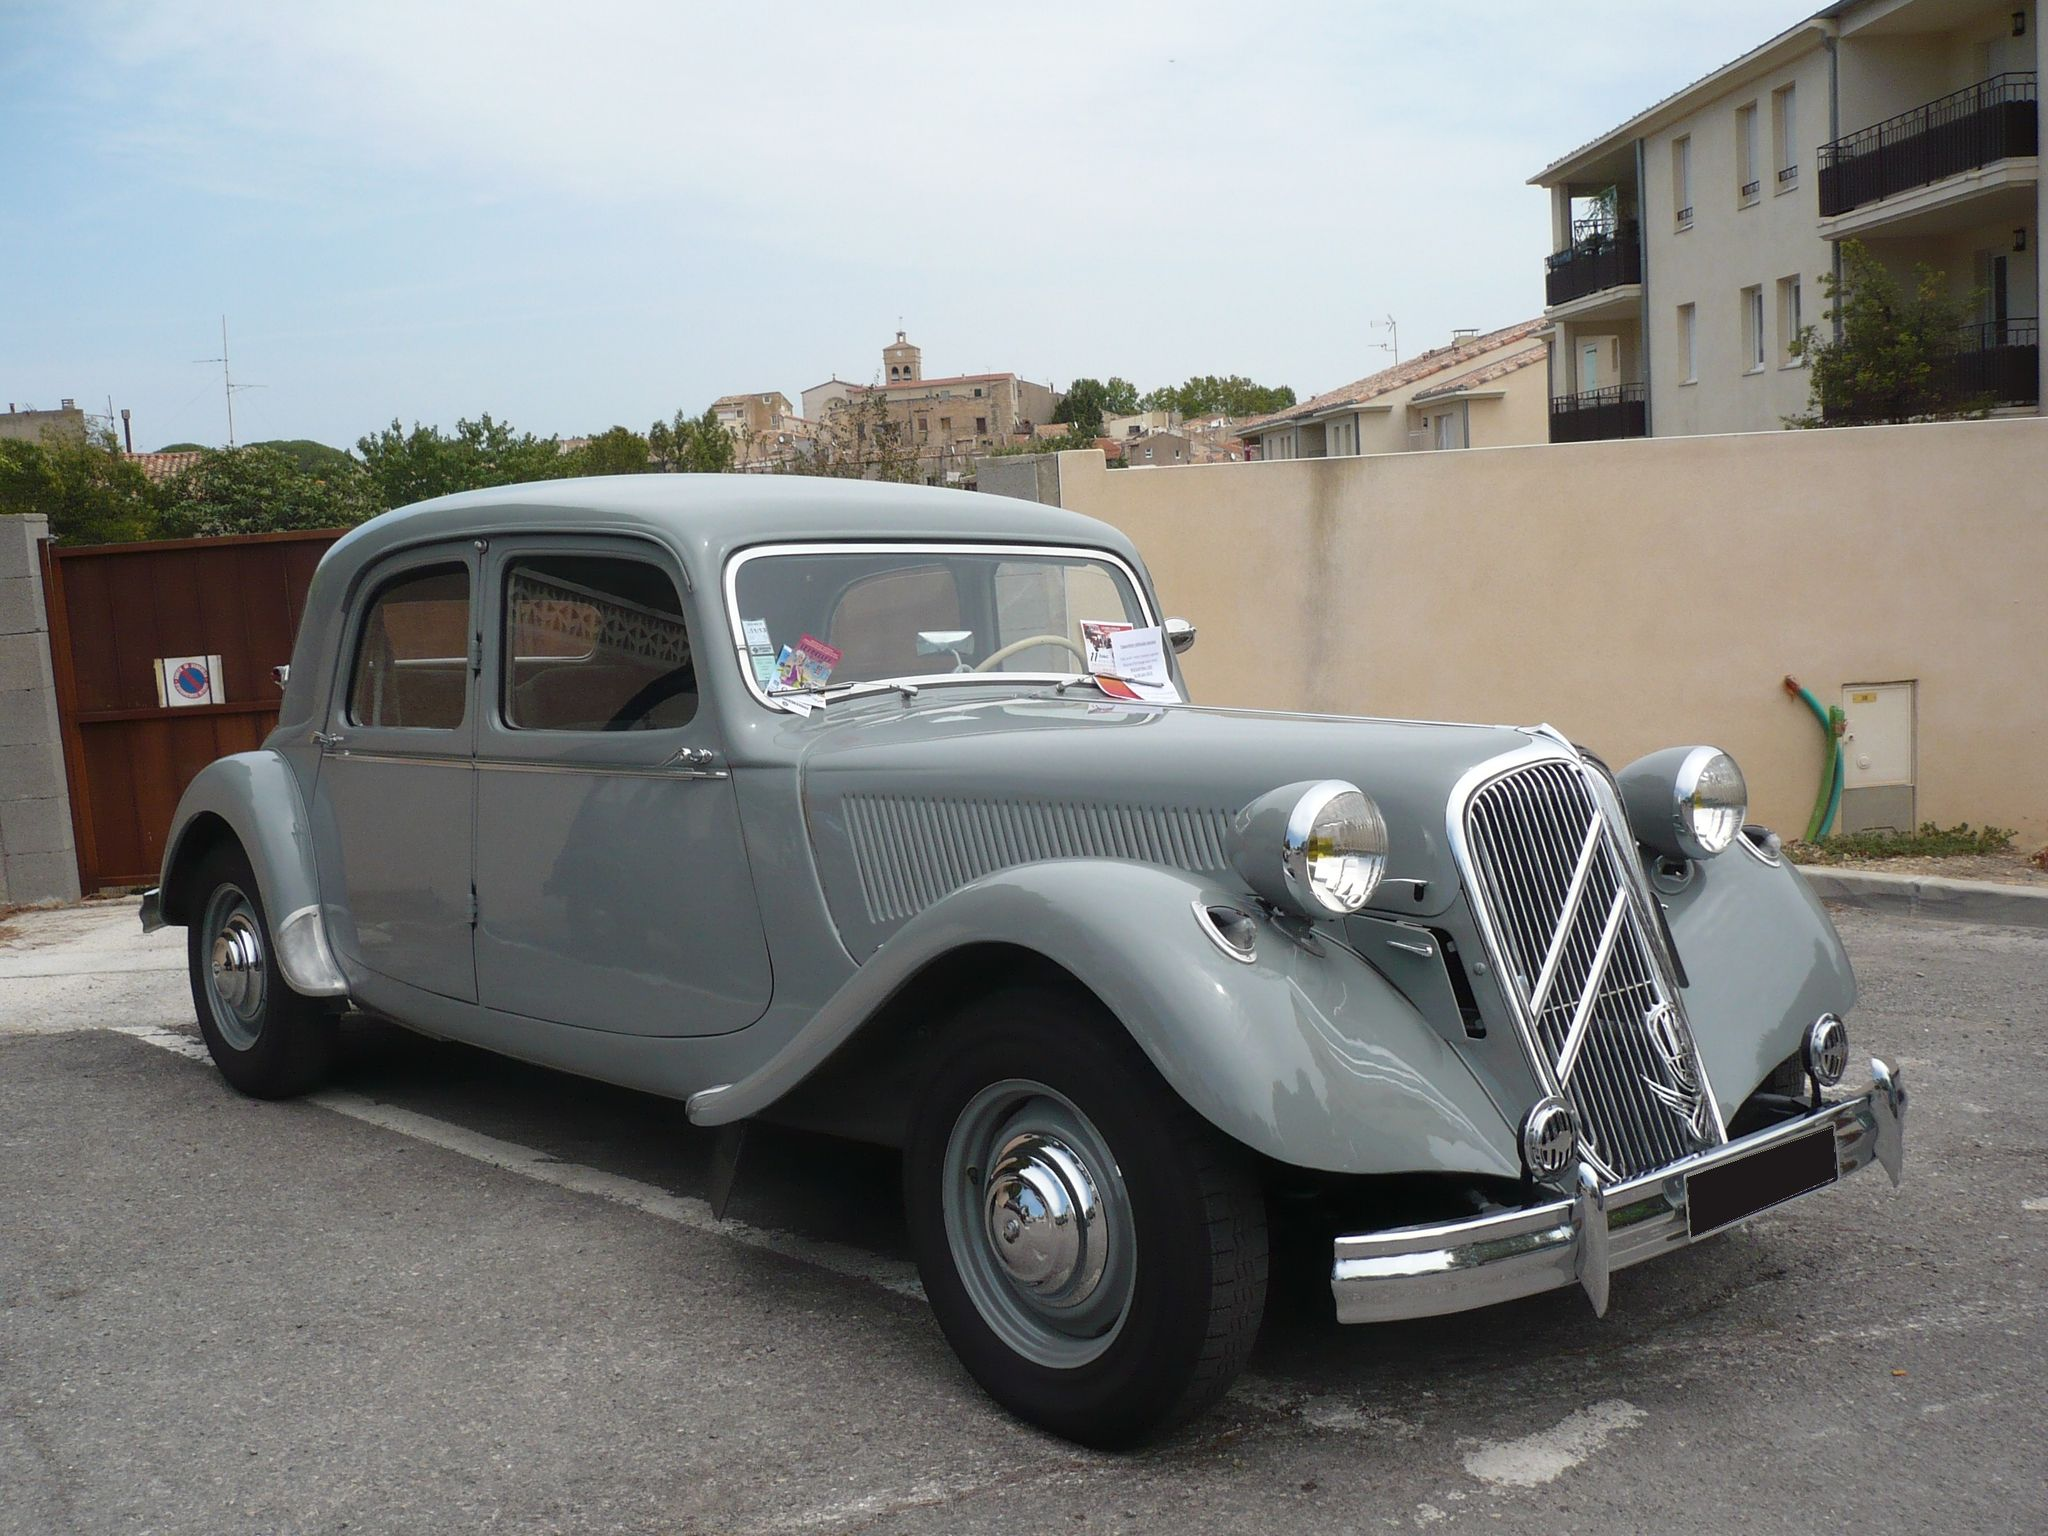 CITROËN Traction Avant 15 6 cyl Poussan (1)